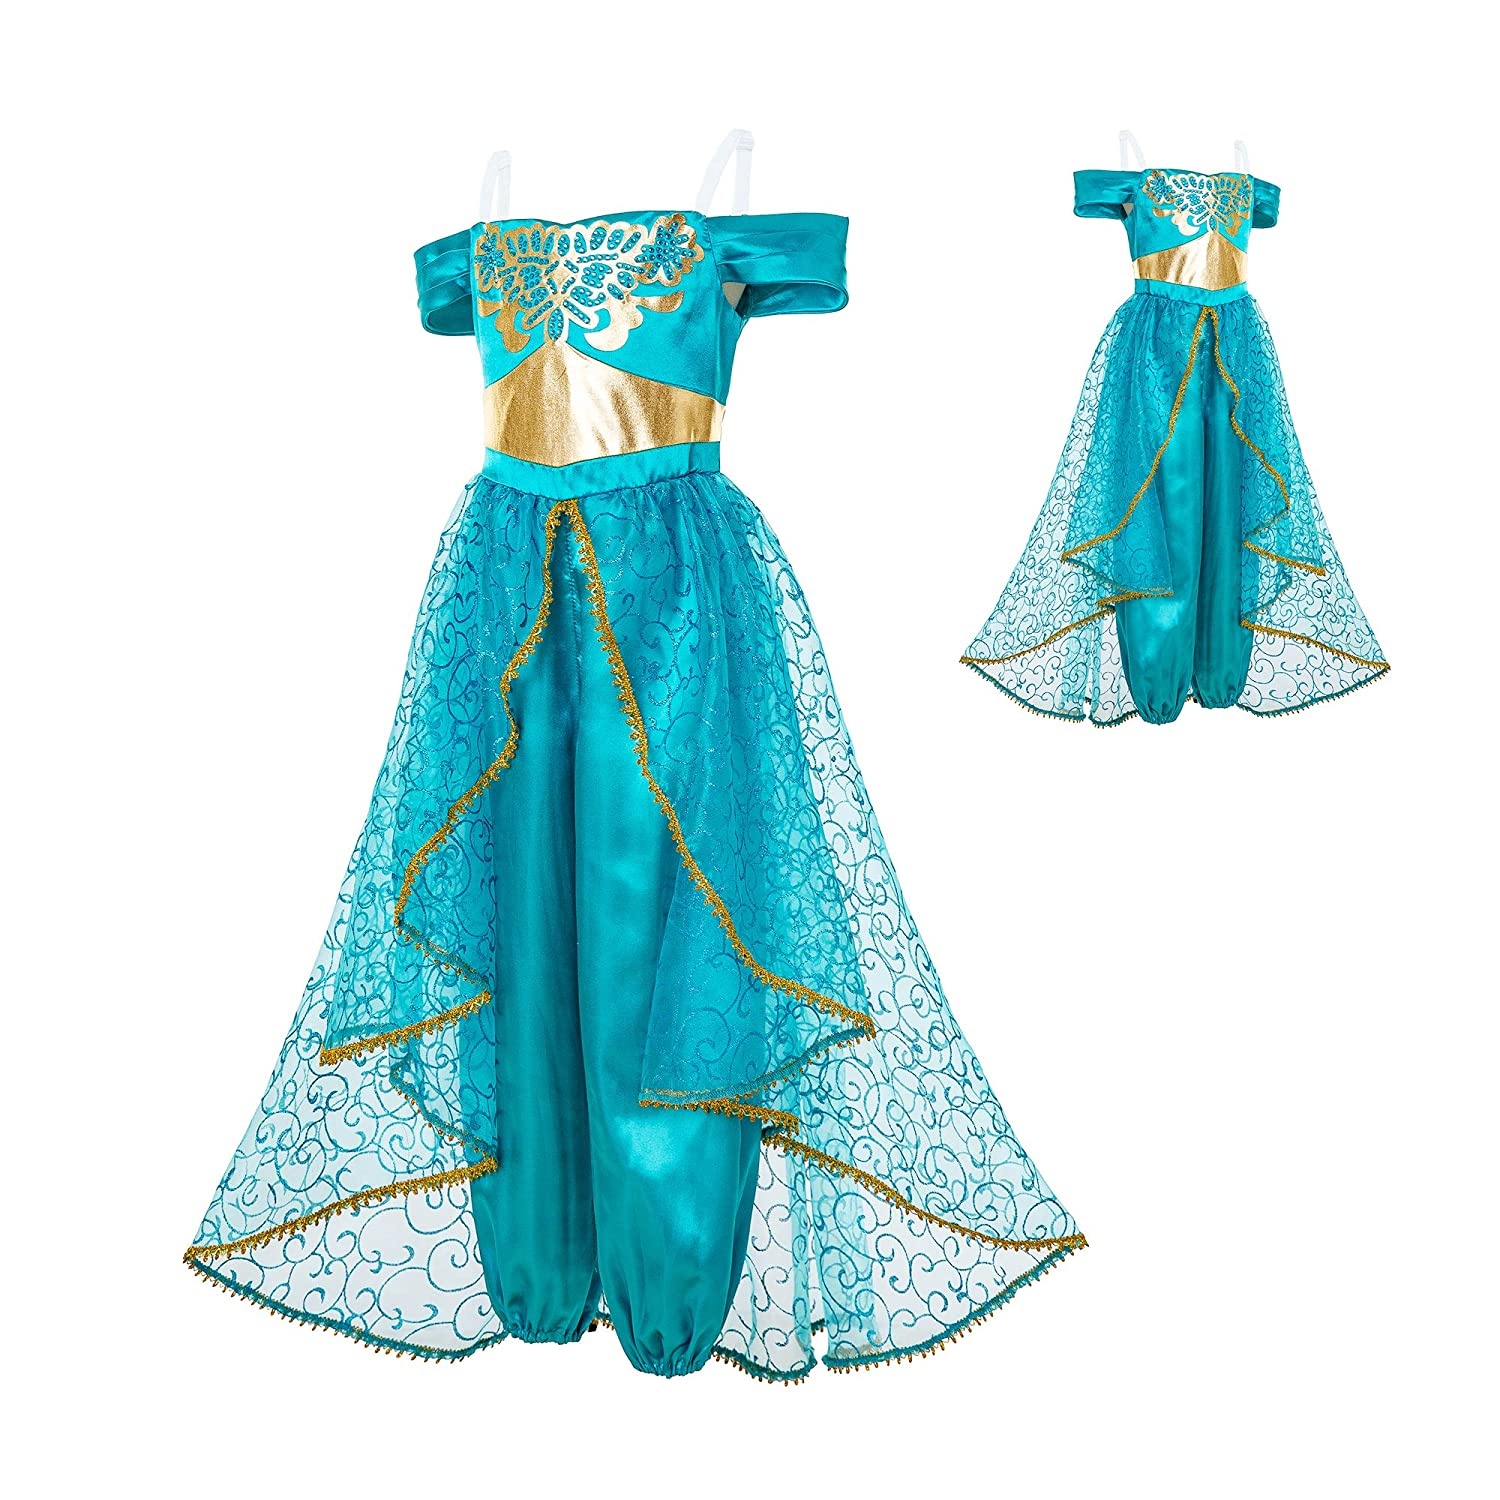 Mooler Princesa Jasmine Girls Dress Up Disfraces Halloween Fiesta ...